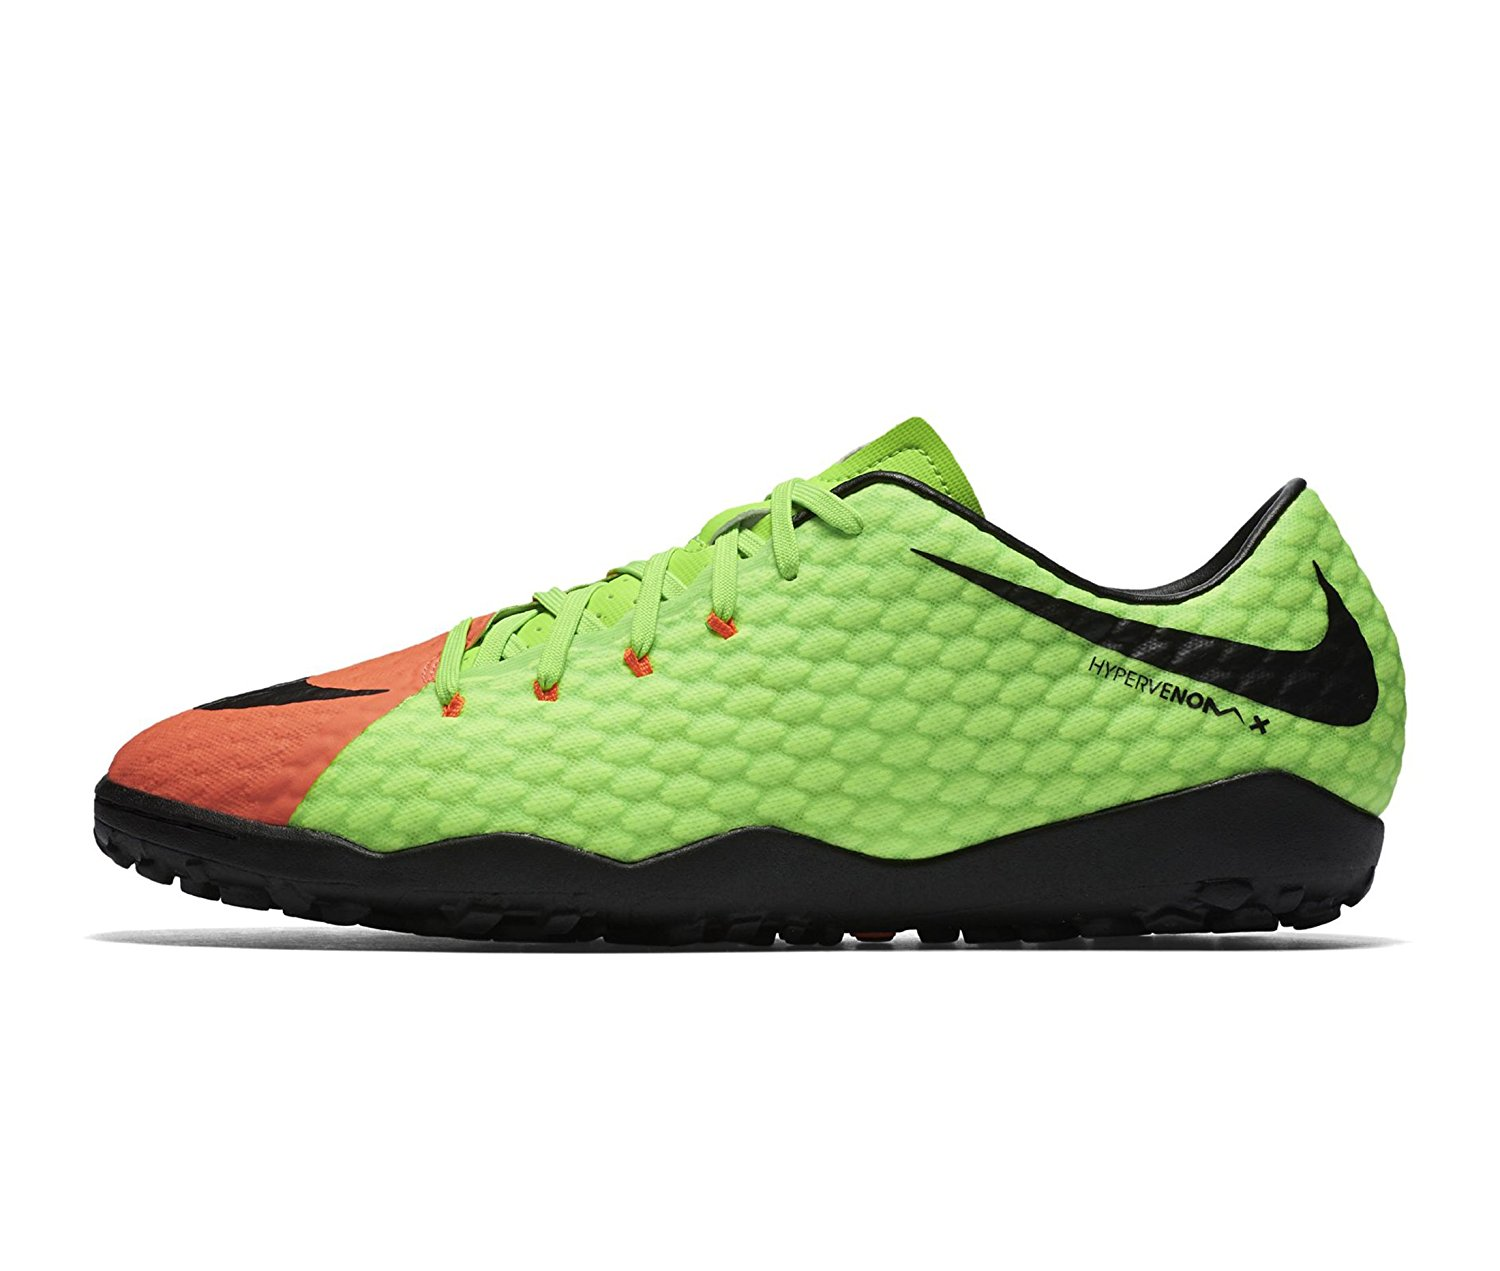 46c516369 Get Quotations · NIKE Men s HyperVenomX Phelon III TF Turf Soccer Shoes